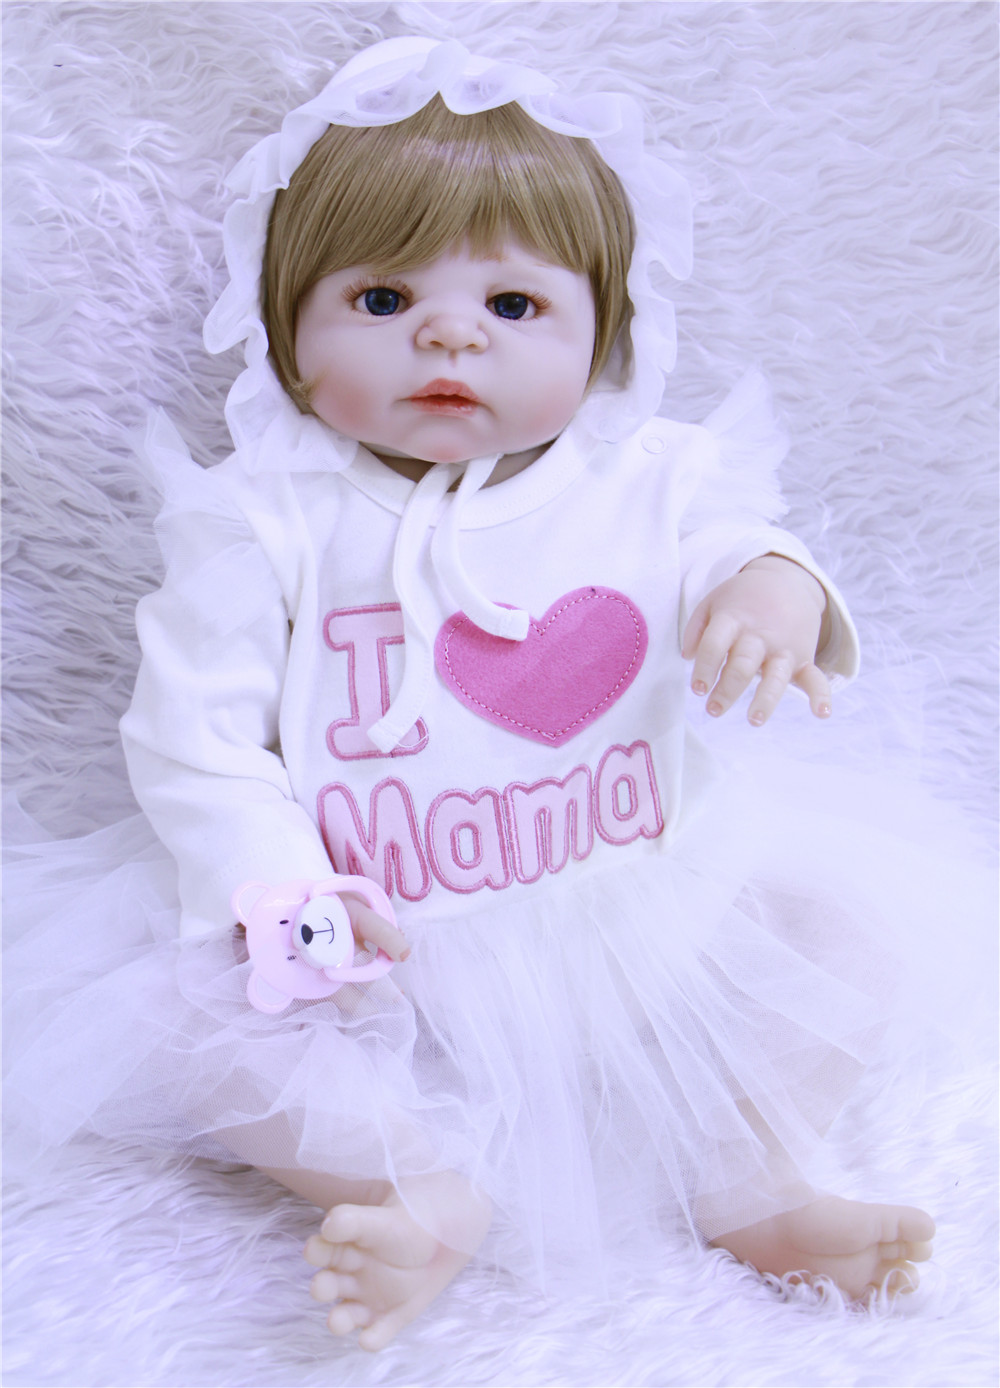 22 full body silicone reborn baby for girls toys gift fake baby doll reborn can bath dolls Bebes reborn  bonecas  brinquedos 22 full body silicone reborn baby for girls toys gift fake baby doll reborn can bath dolls Bebes reborn  bonecas  brinquedos